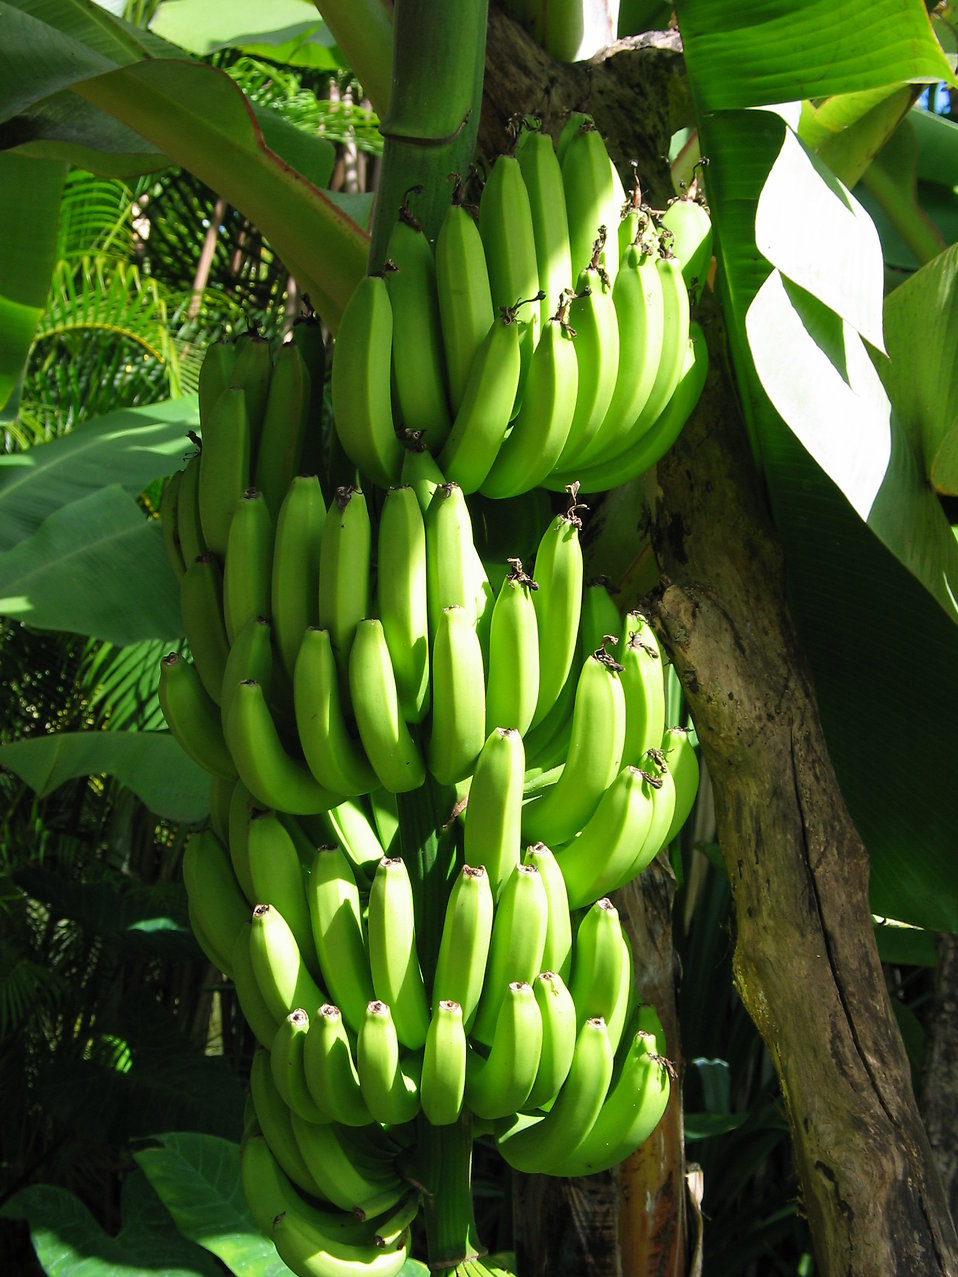 Bananas growing in bunches : Free Stock Photo